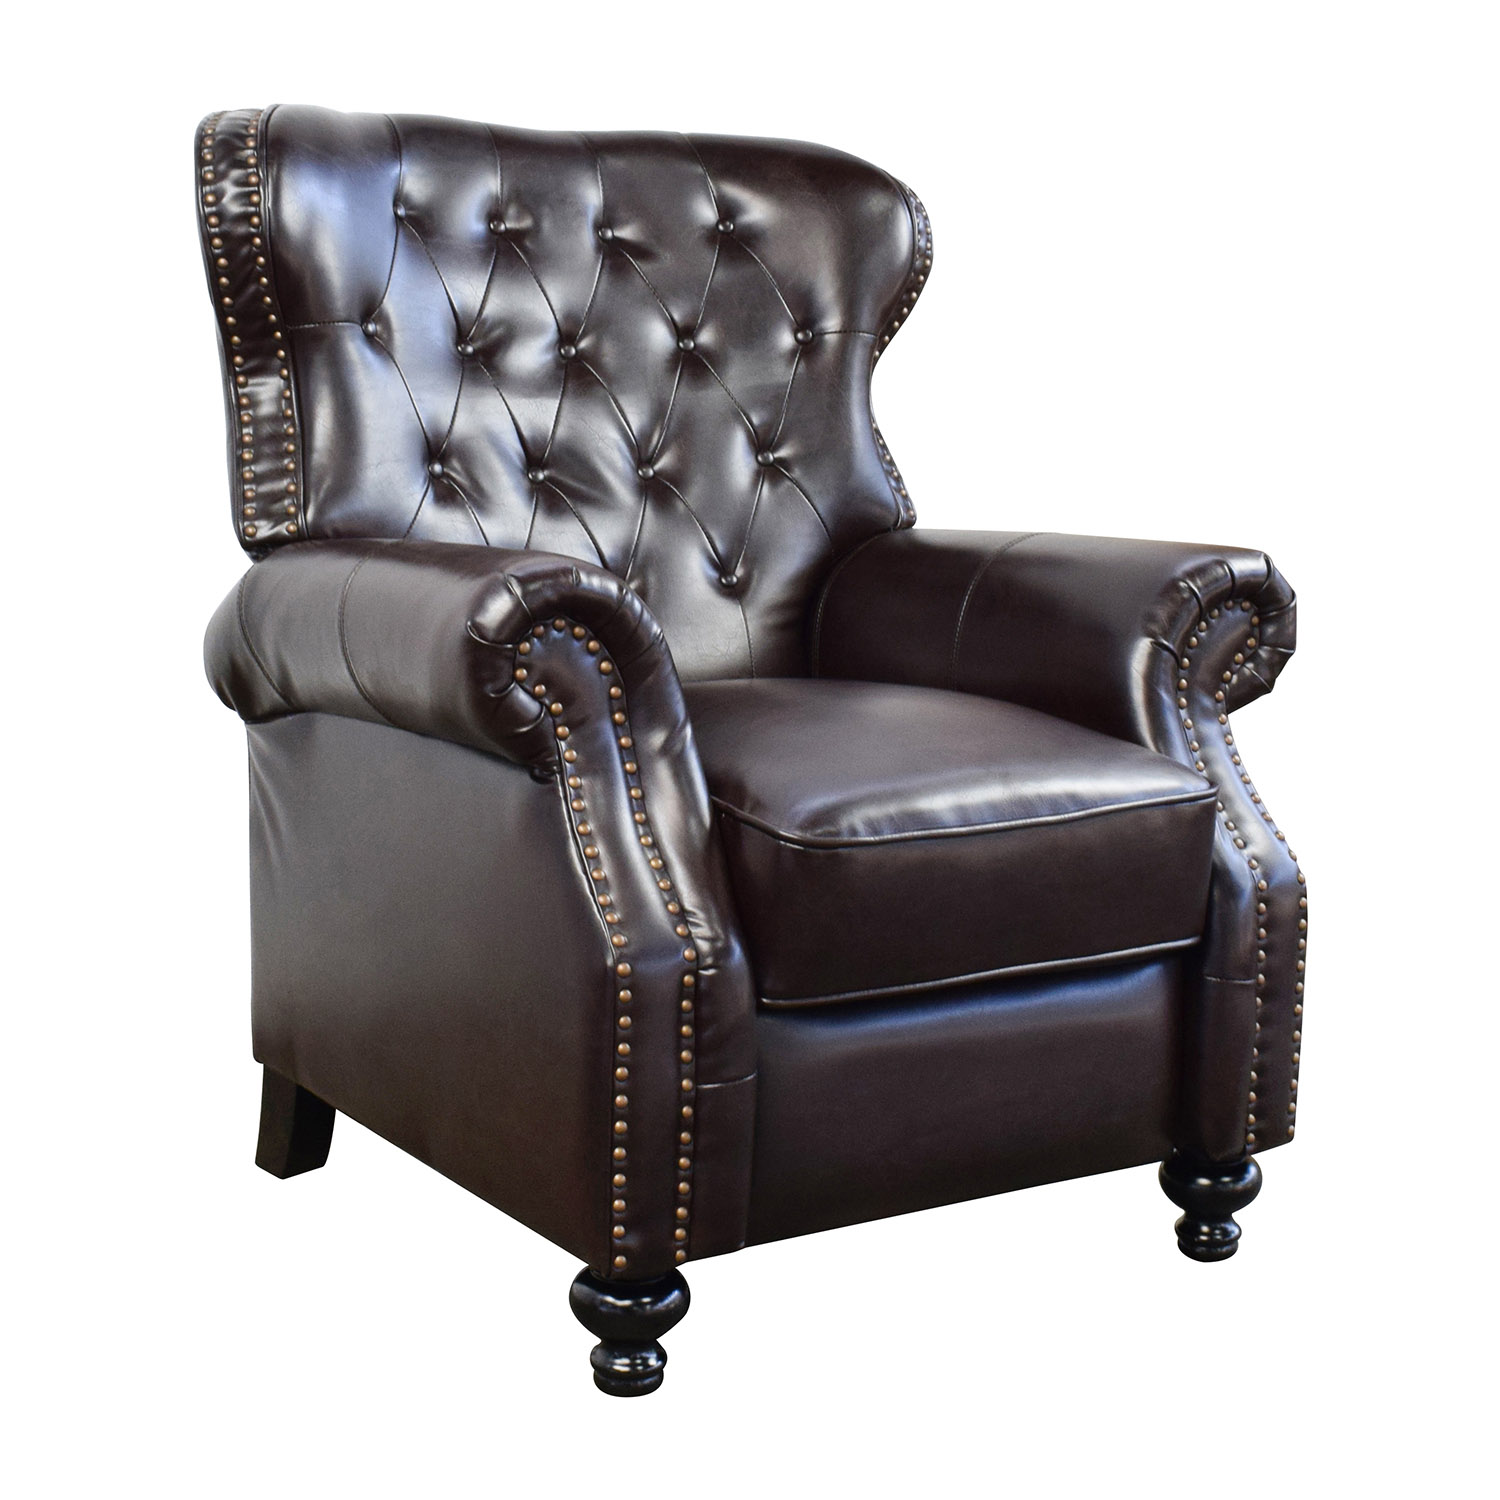 58% OFF Tufted Brown Leather Recliner Chairs